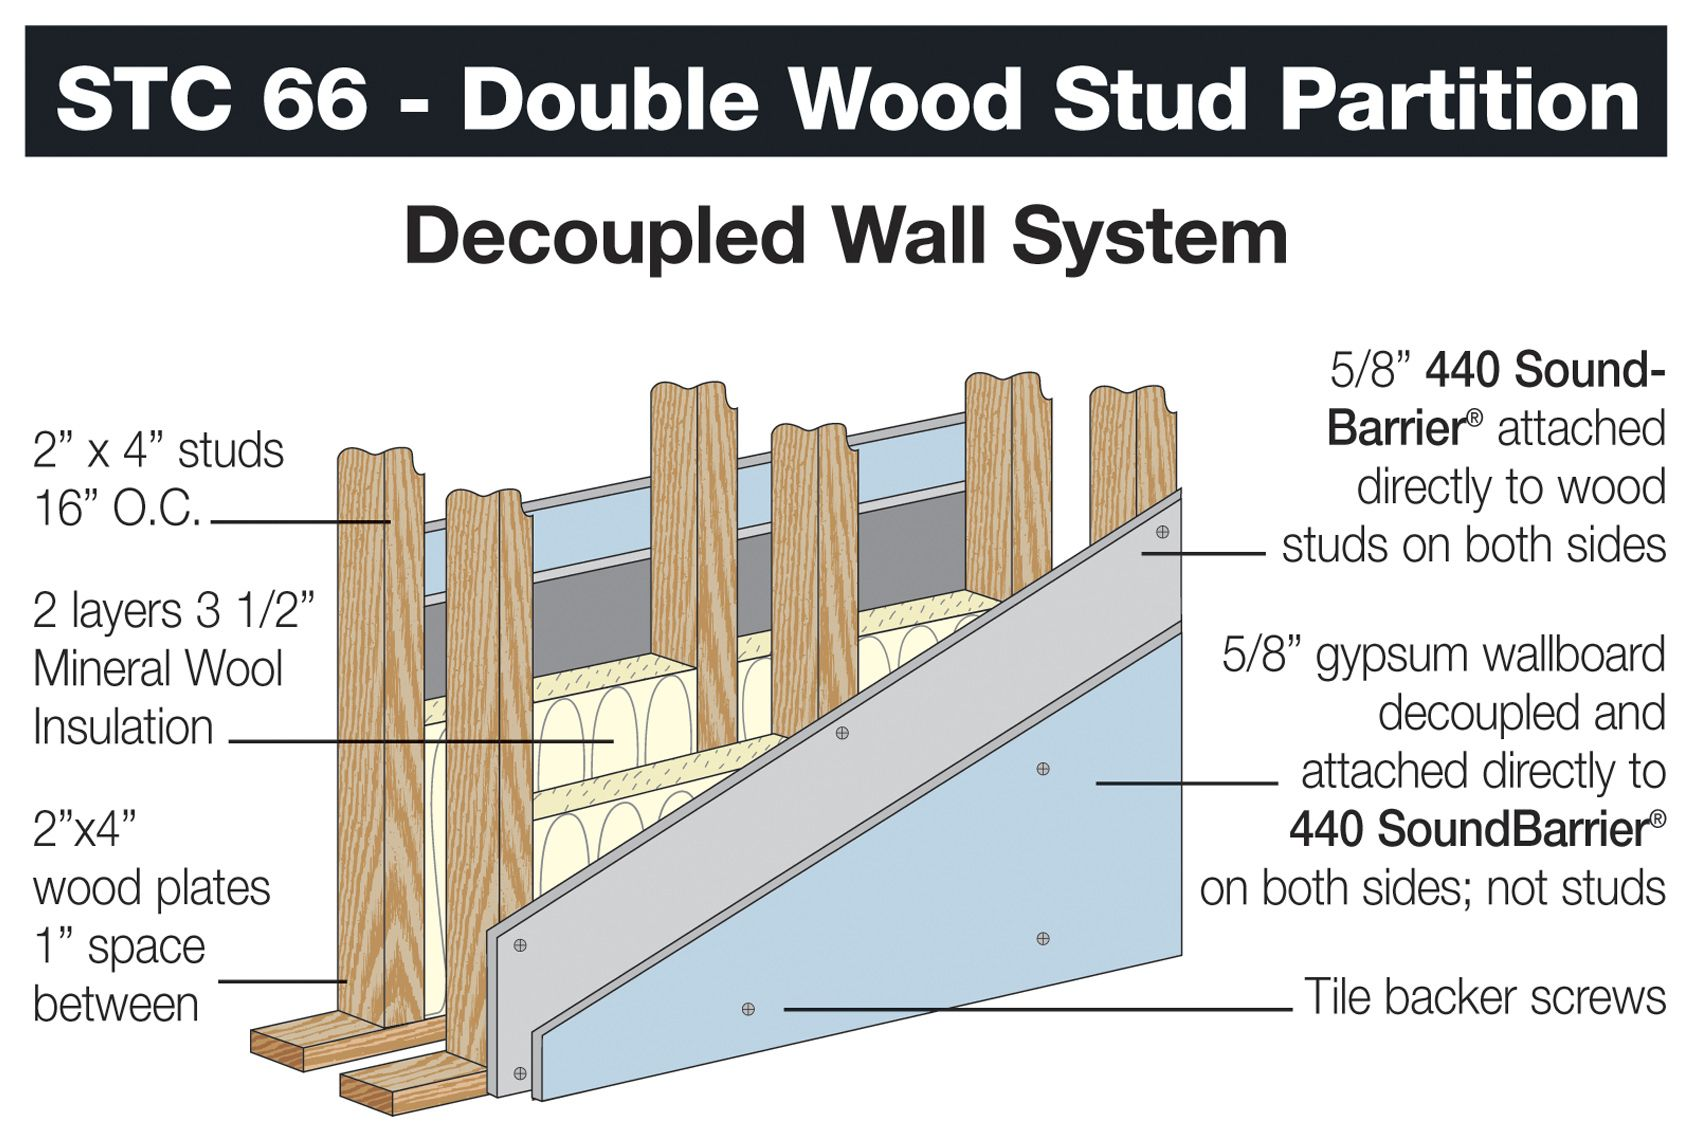 Soundproof door construction - This Design Uses Double Decoupled Walls With Special Soundproofing Panels On Each Side Underneath The Drywall